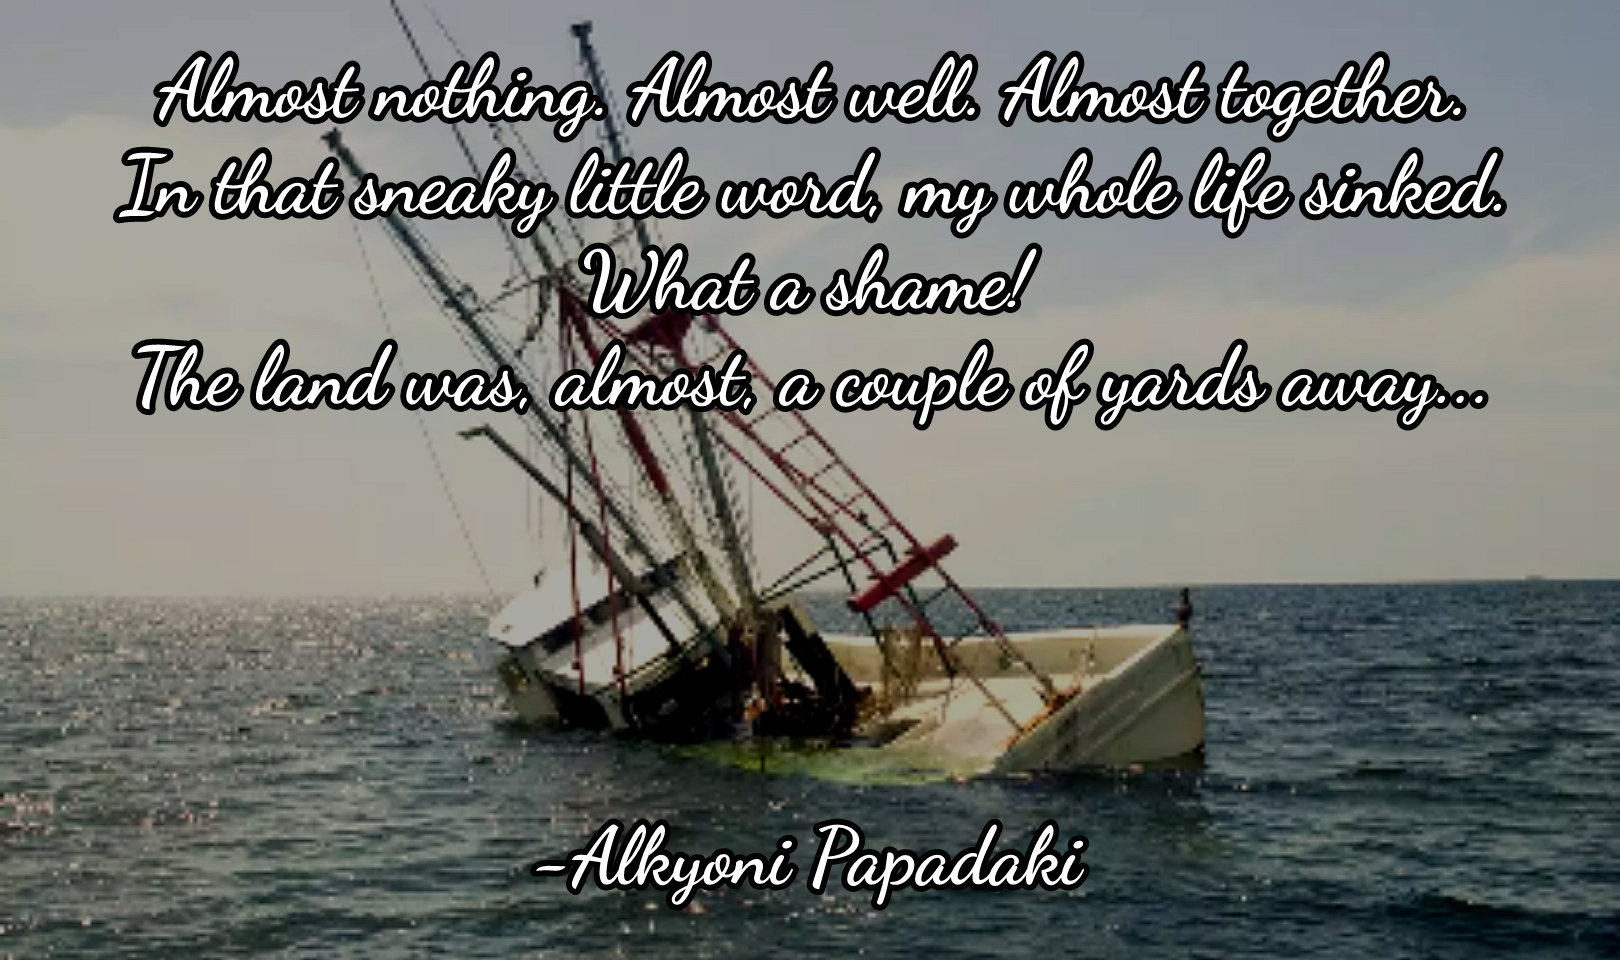 """Almost…"" – Alkyoni Papadaki [1620×960][OC]"